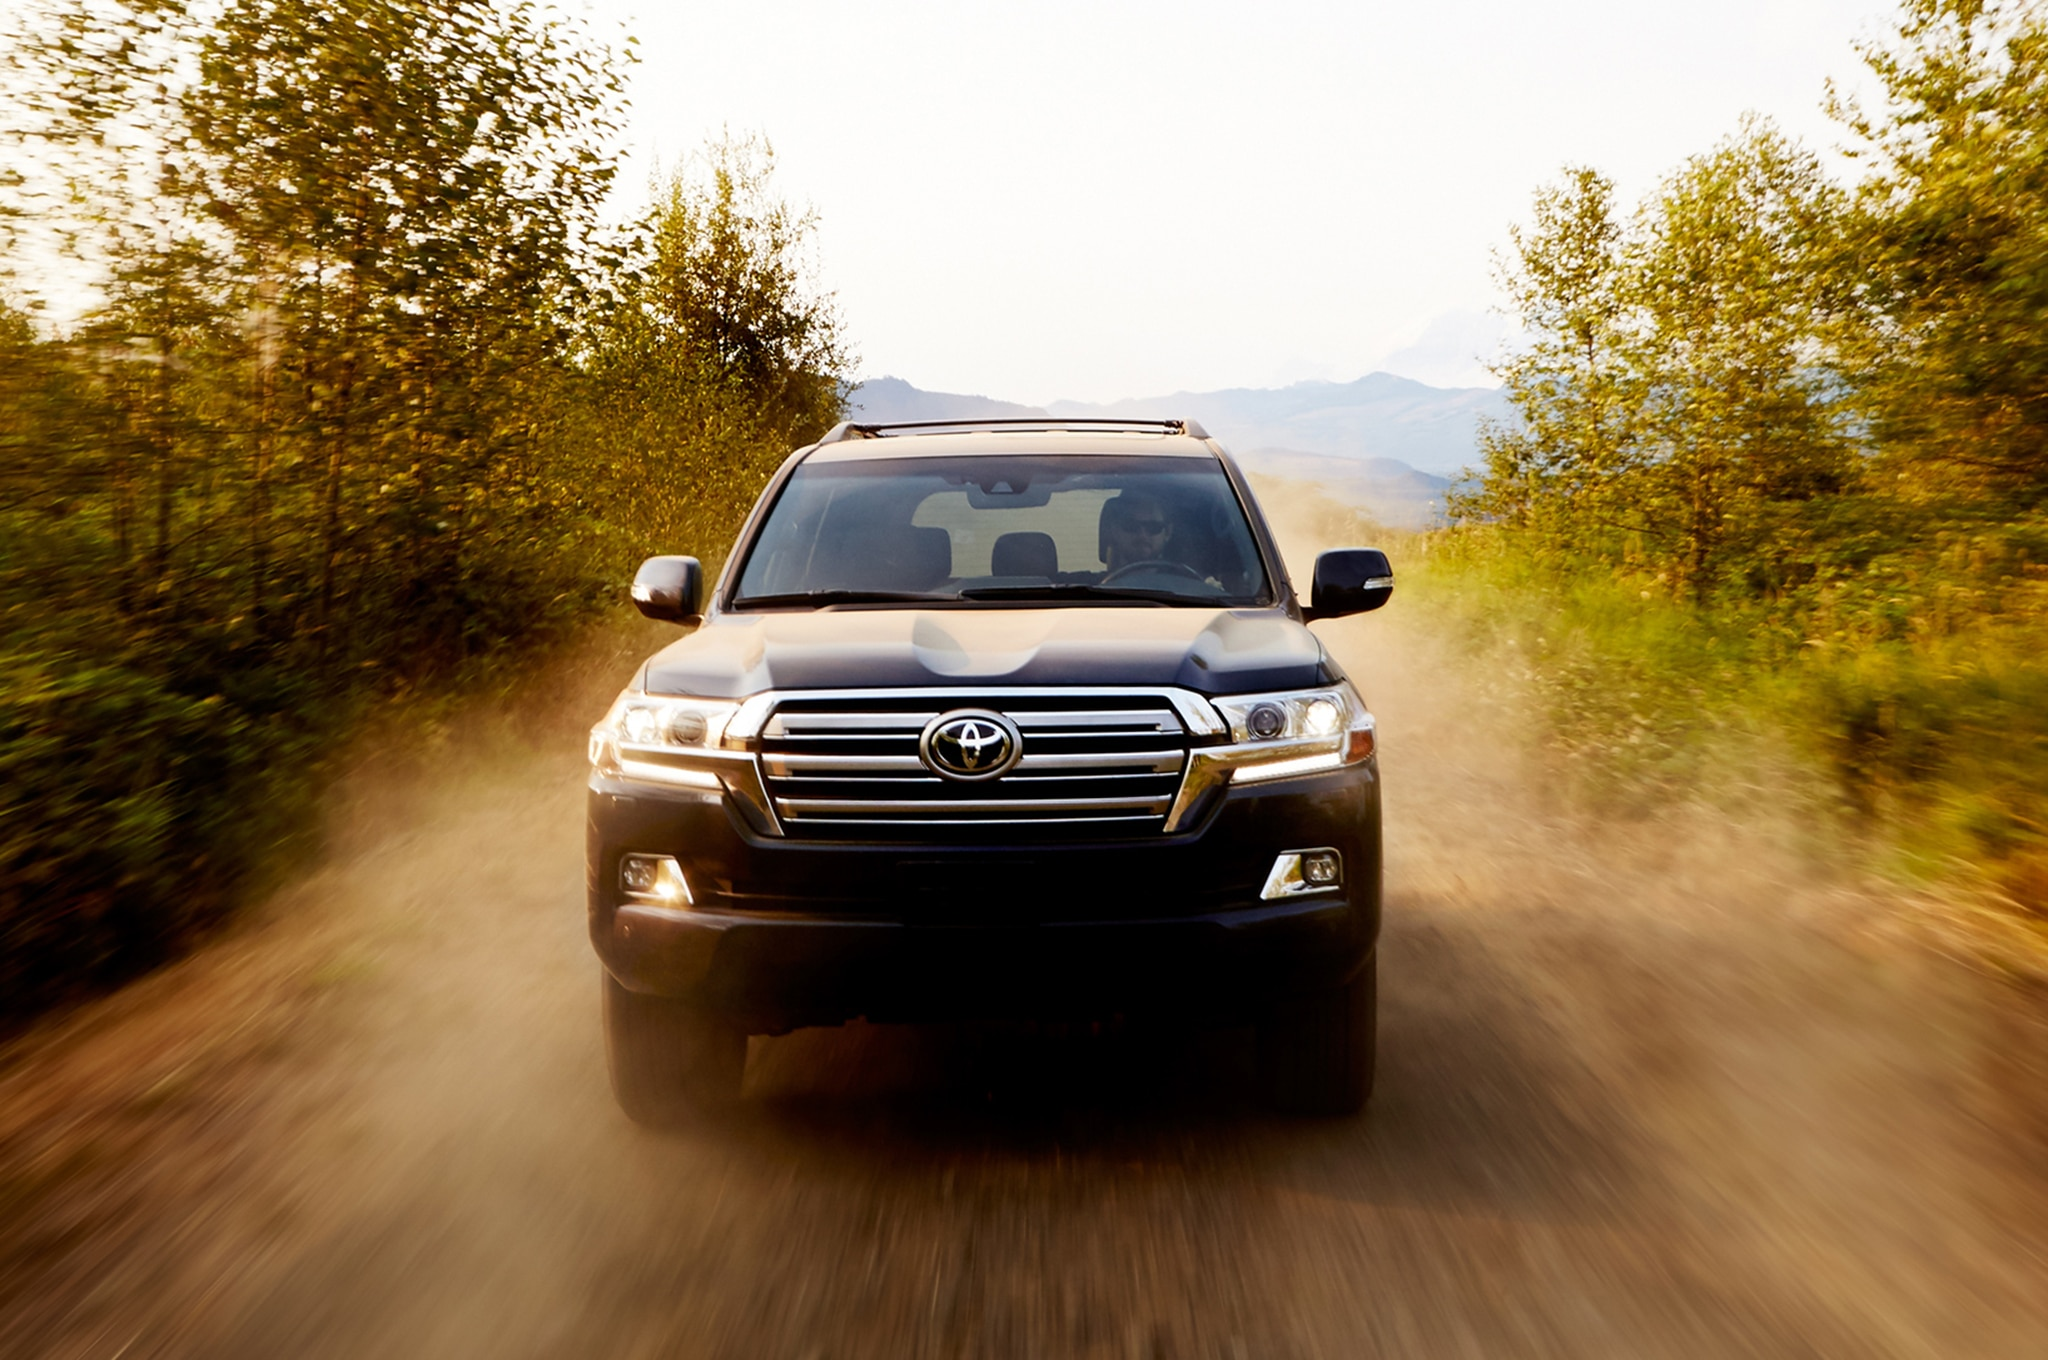 Toyota Land Cruiser V8 Hd Wallpapers 2016 Toyota Land Cruiser Updated With New Transmission